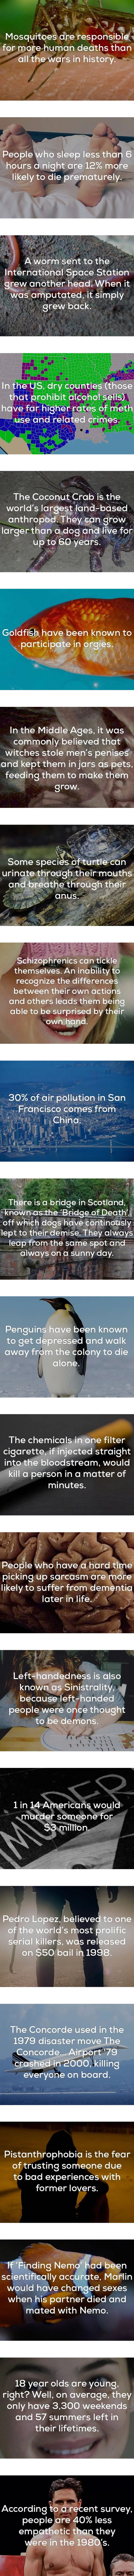 A collection of weird and creepy facts that will chill you to the bone